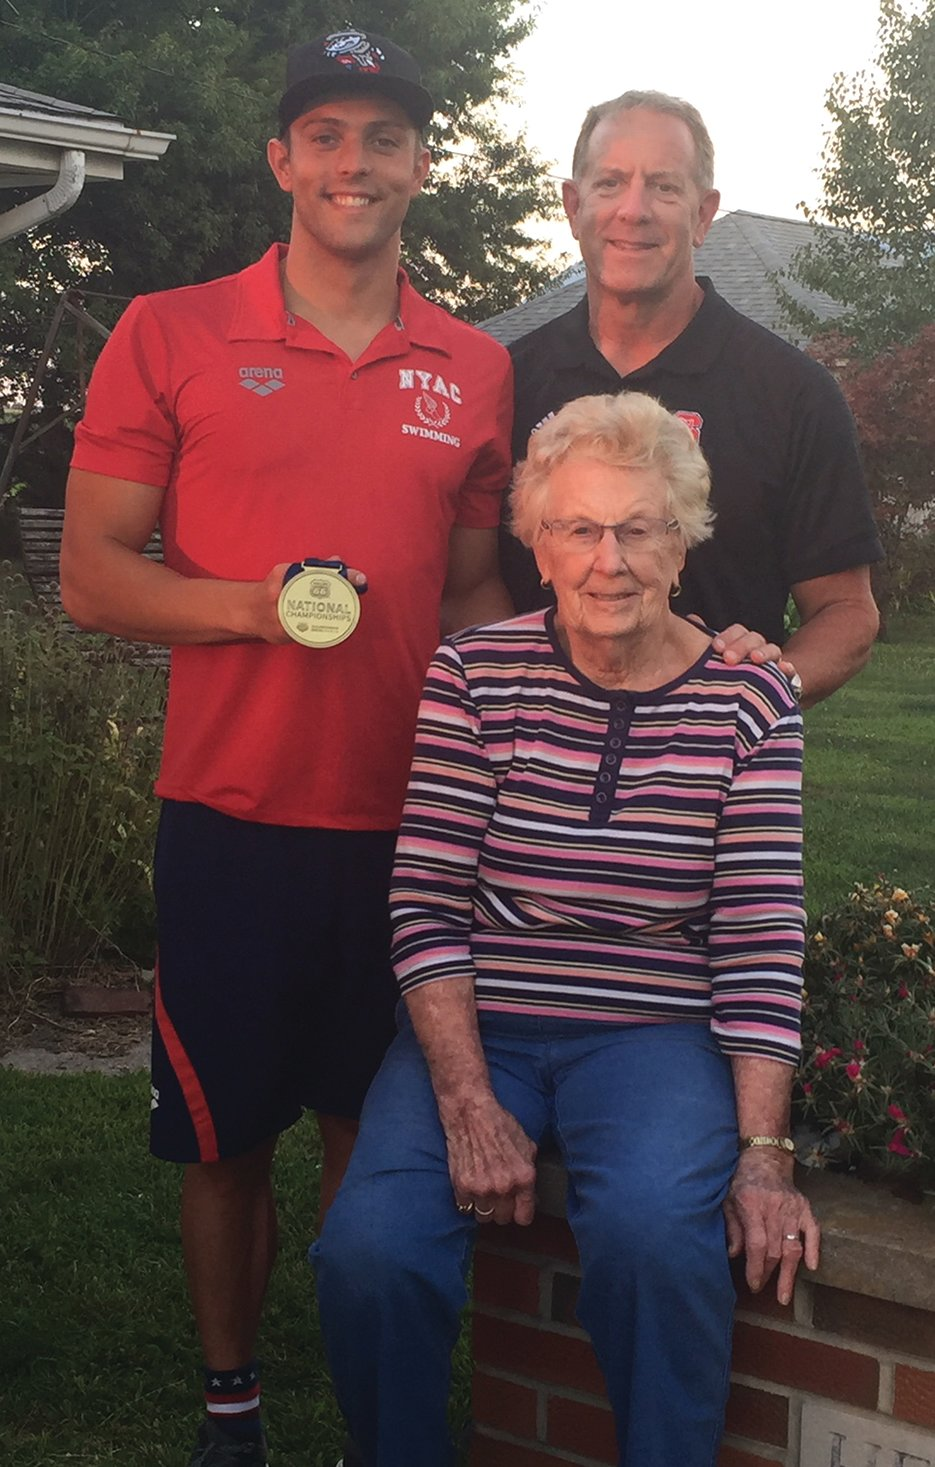 Following a successful championship, Ryan Held of Springfield paid a special visit to his grandmother, Marge Held, in Raymond. Pictured above with Held and his grandmother is his father, Randy Held.